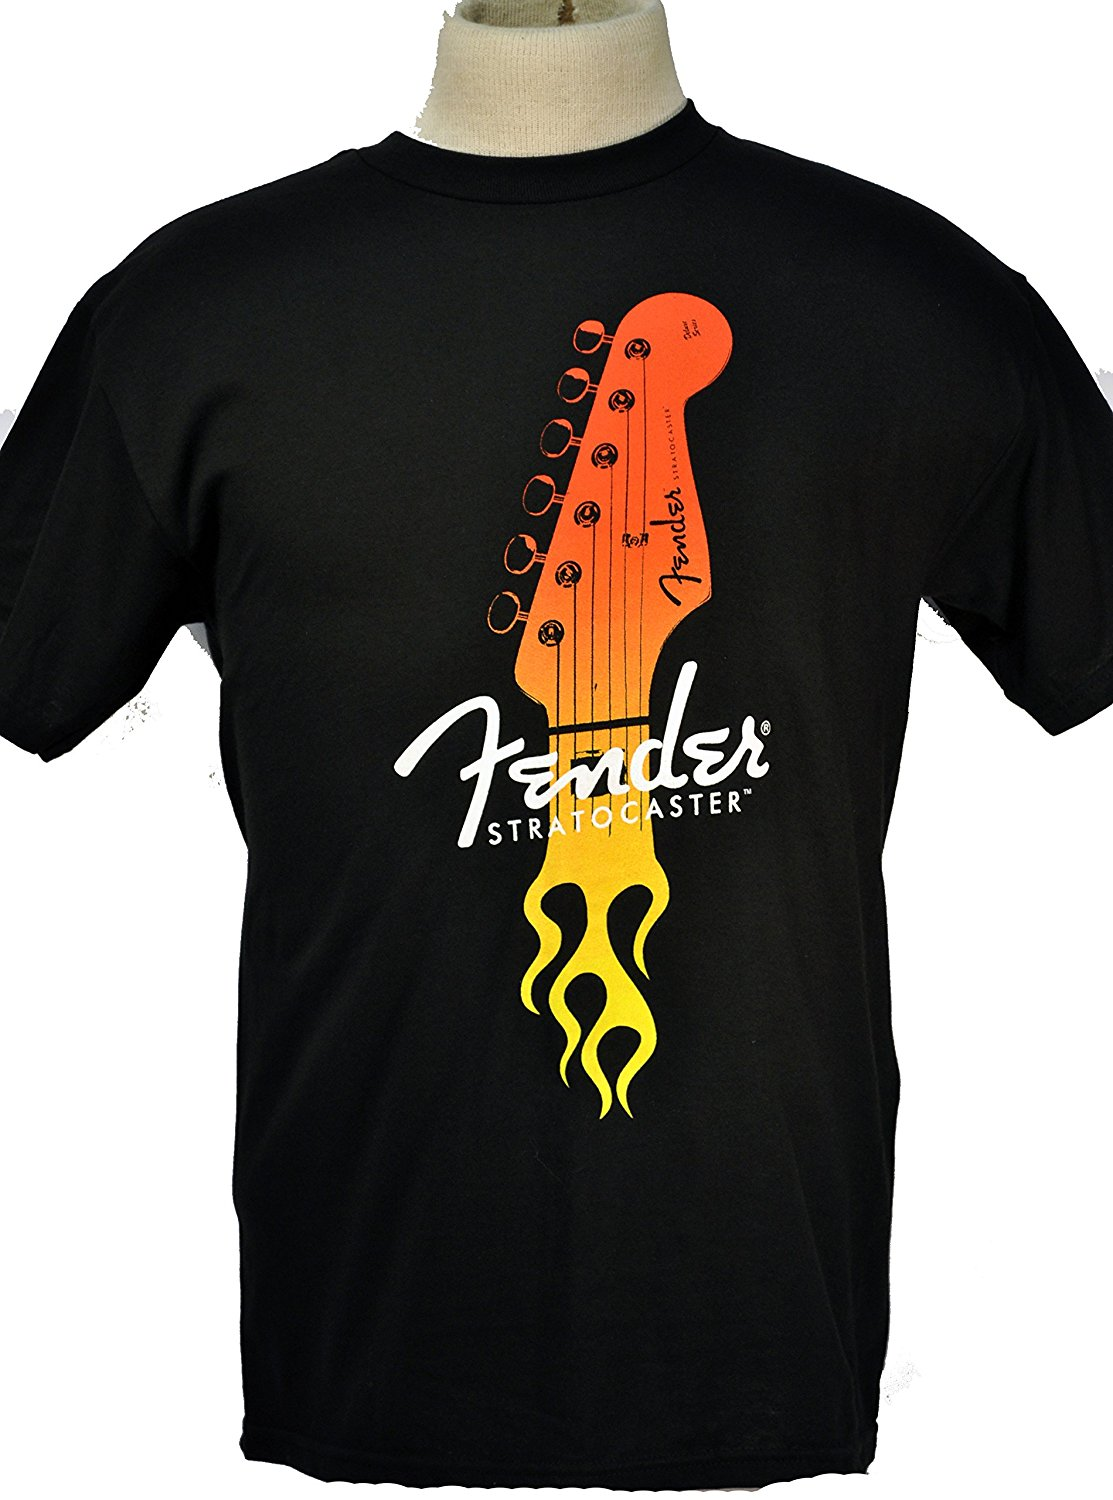 2017 Latest Funny New High Quality Casual Men Crew Neck Short-Sleeve Fender Flaming Stratocaster Guitar T-Shirt